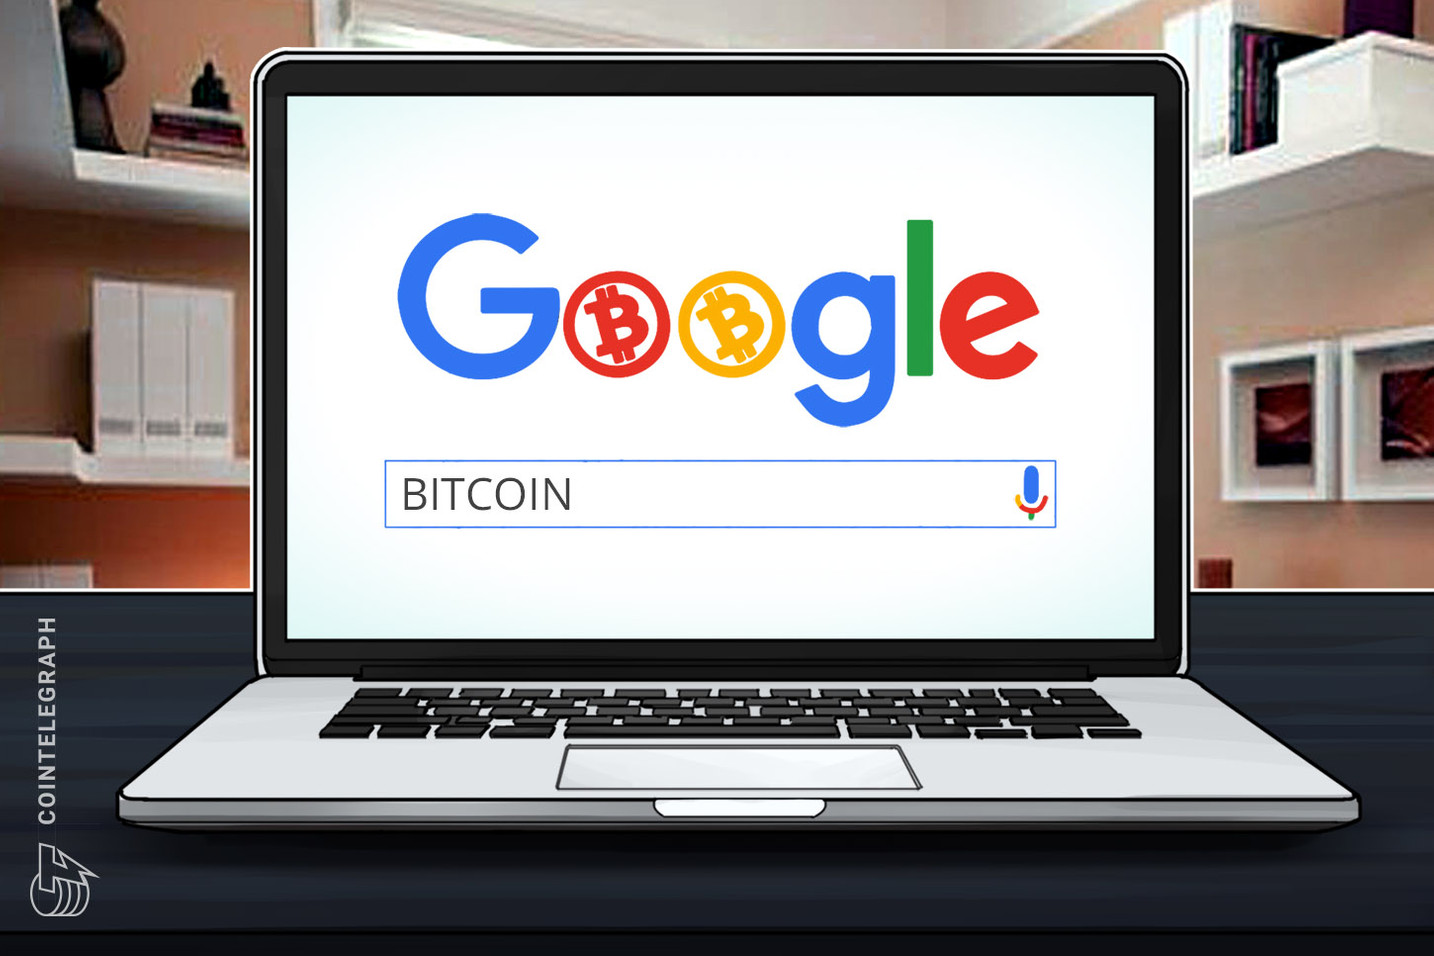 Worldwide Google Searches for 'Bitcoin' Hit 3-Month High